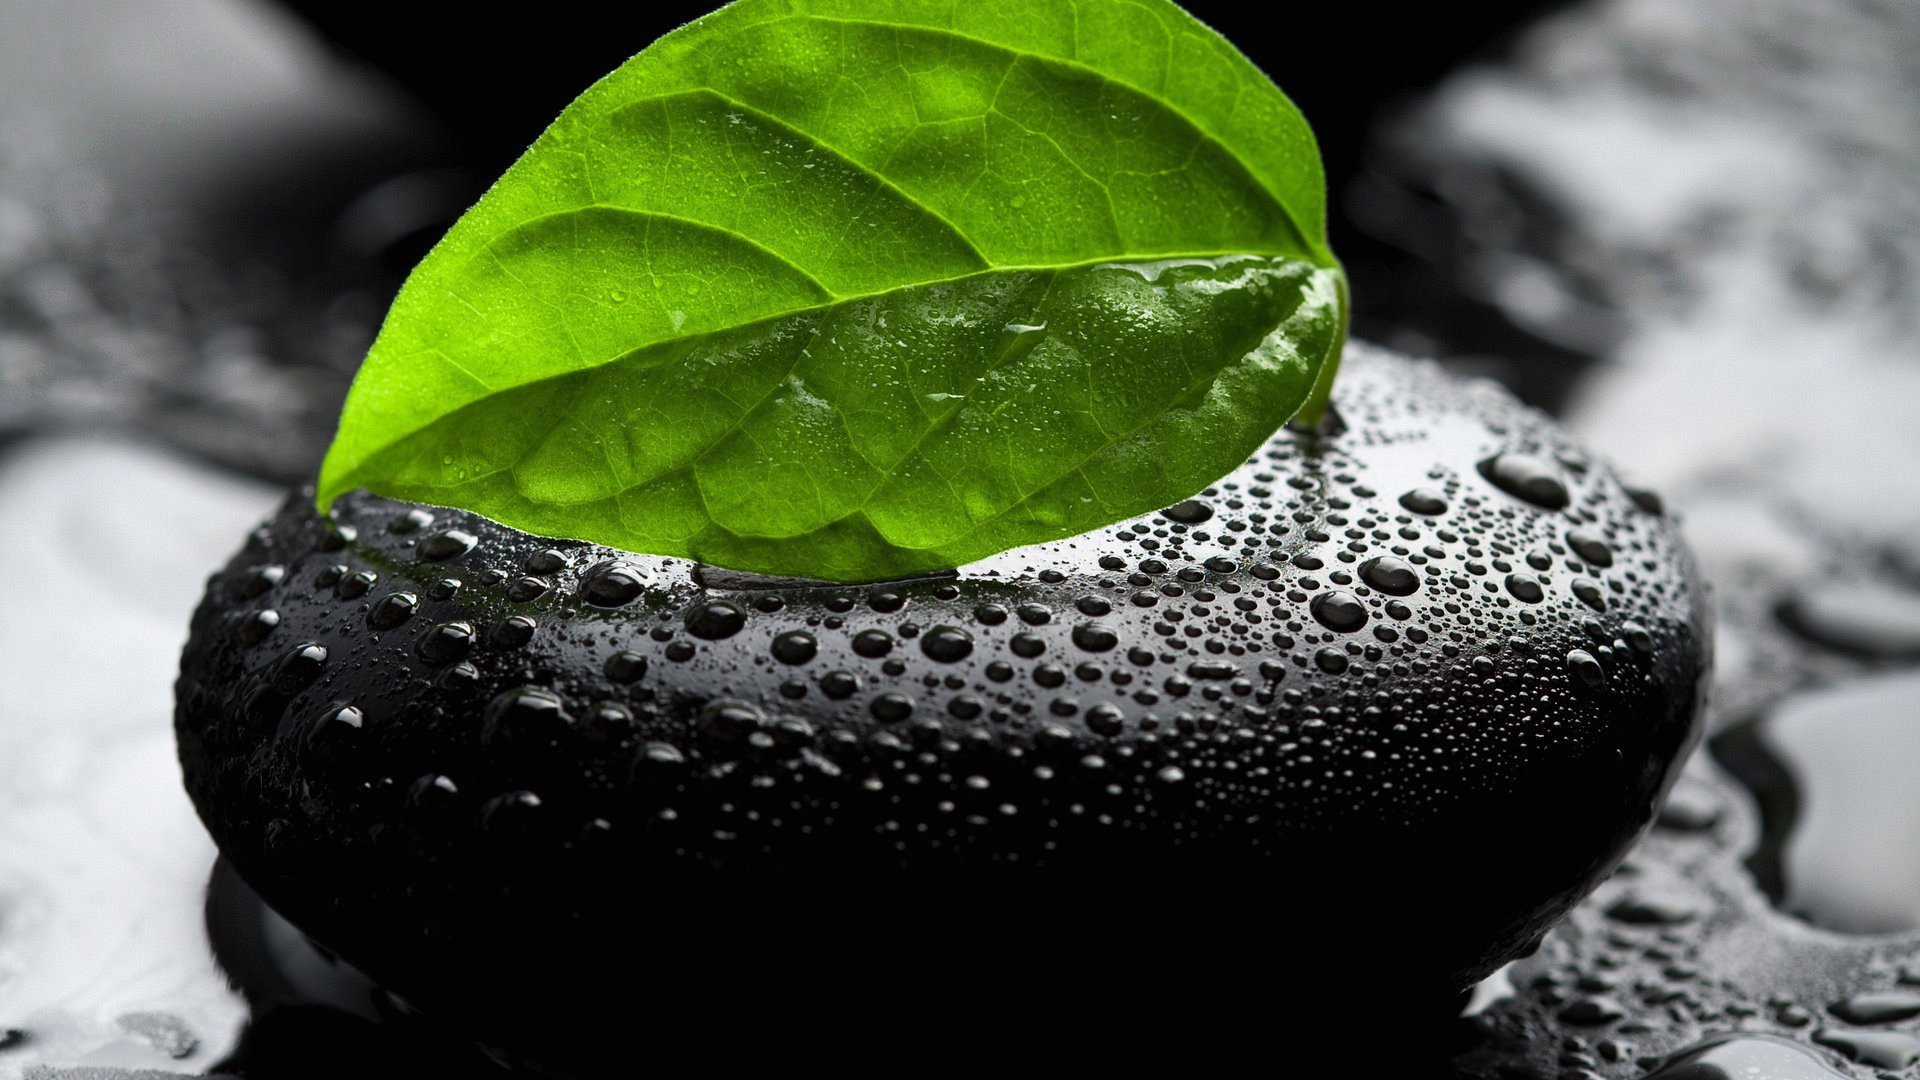 black-stones-leaf-wallpaper-2